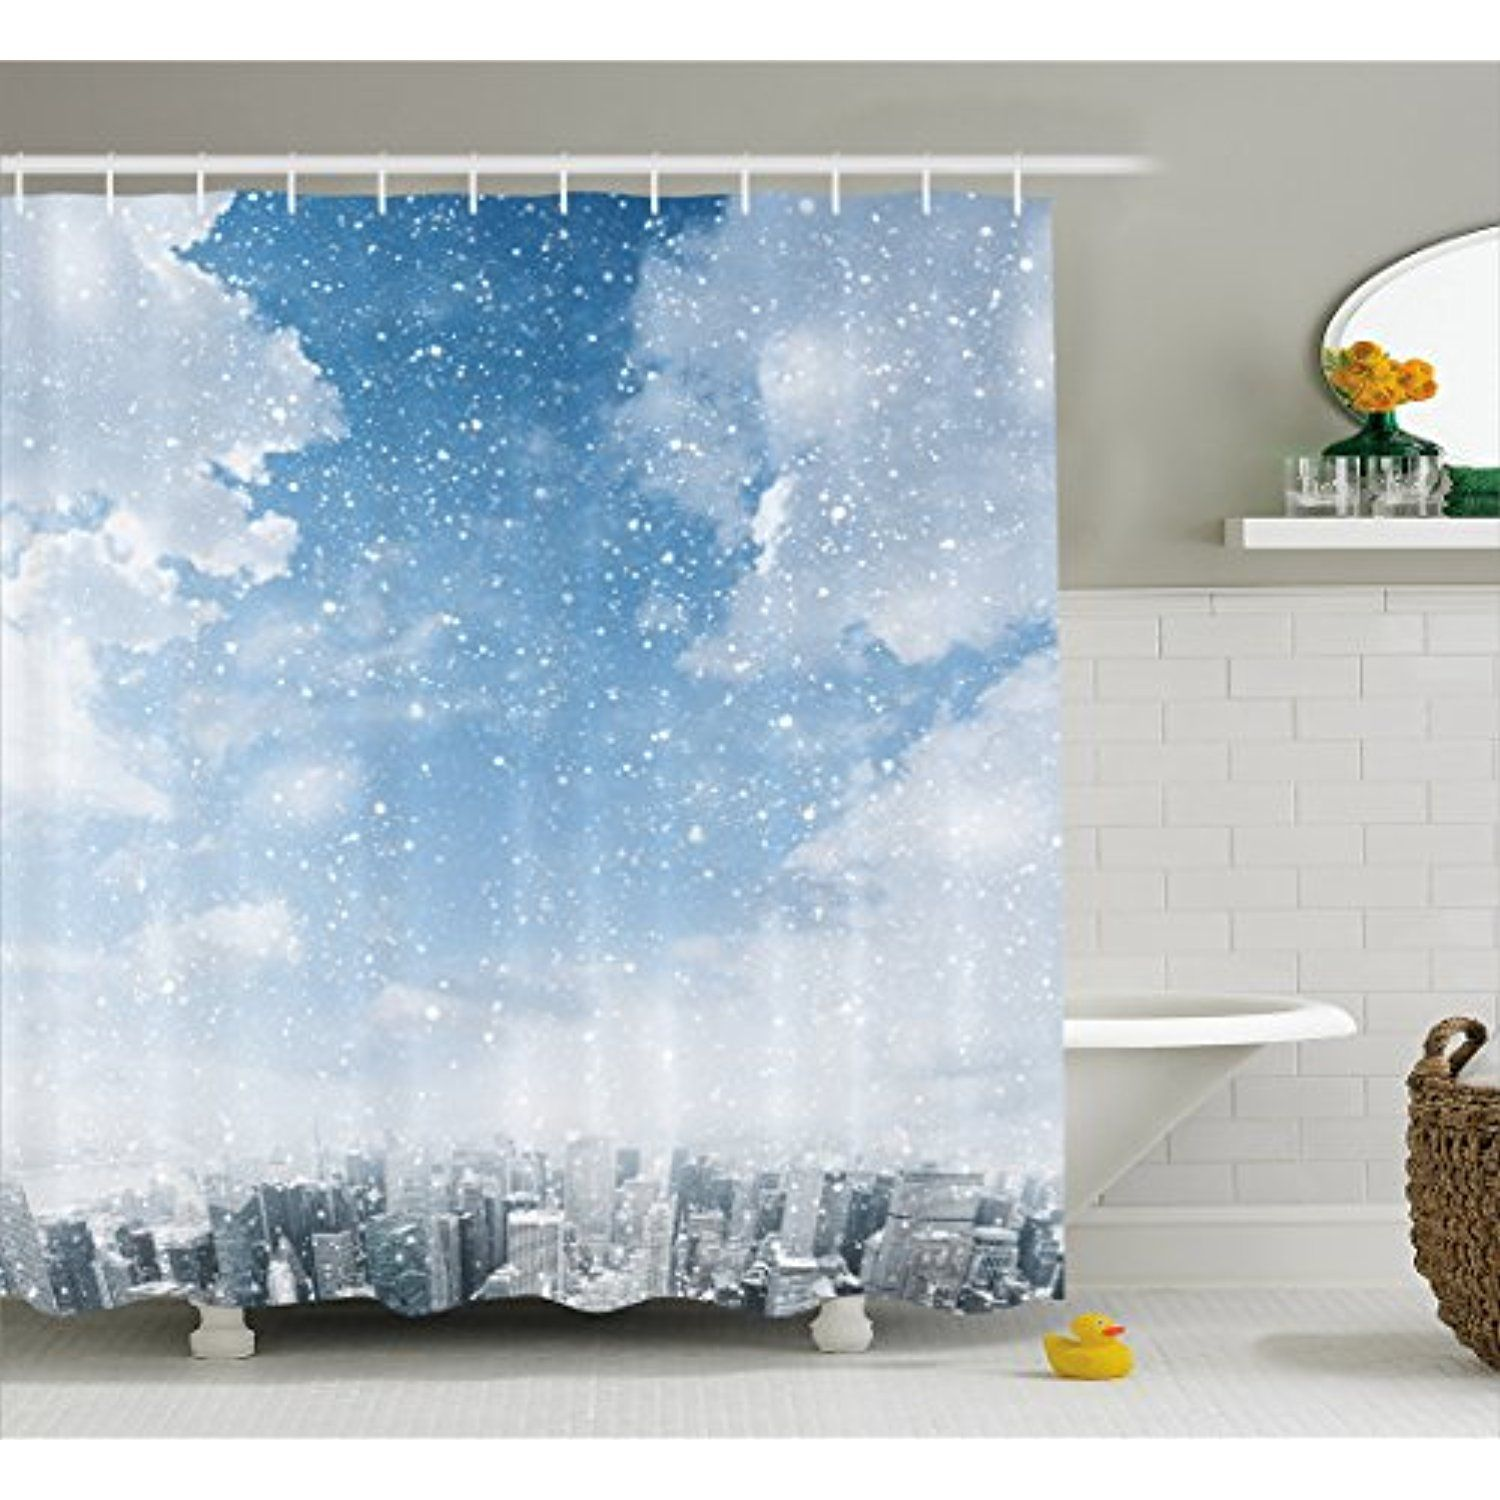 Winter Shower Curtain By Ambesonne Snow Falling Down On The New